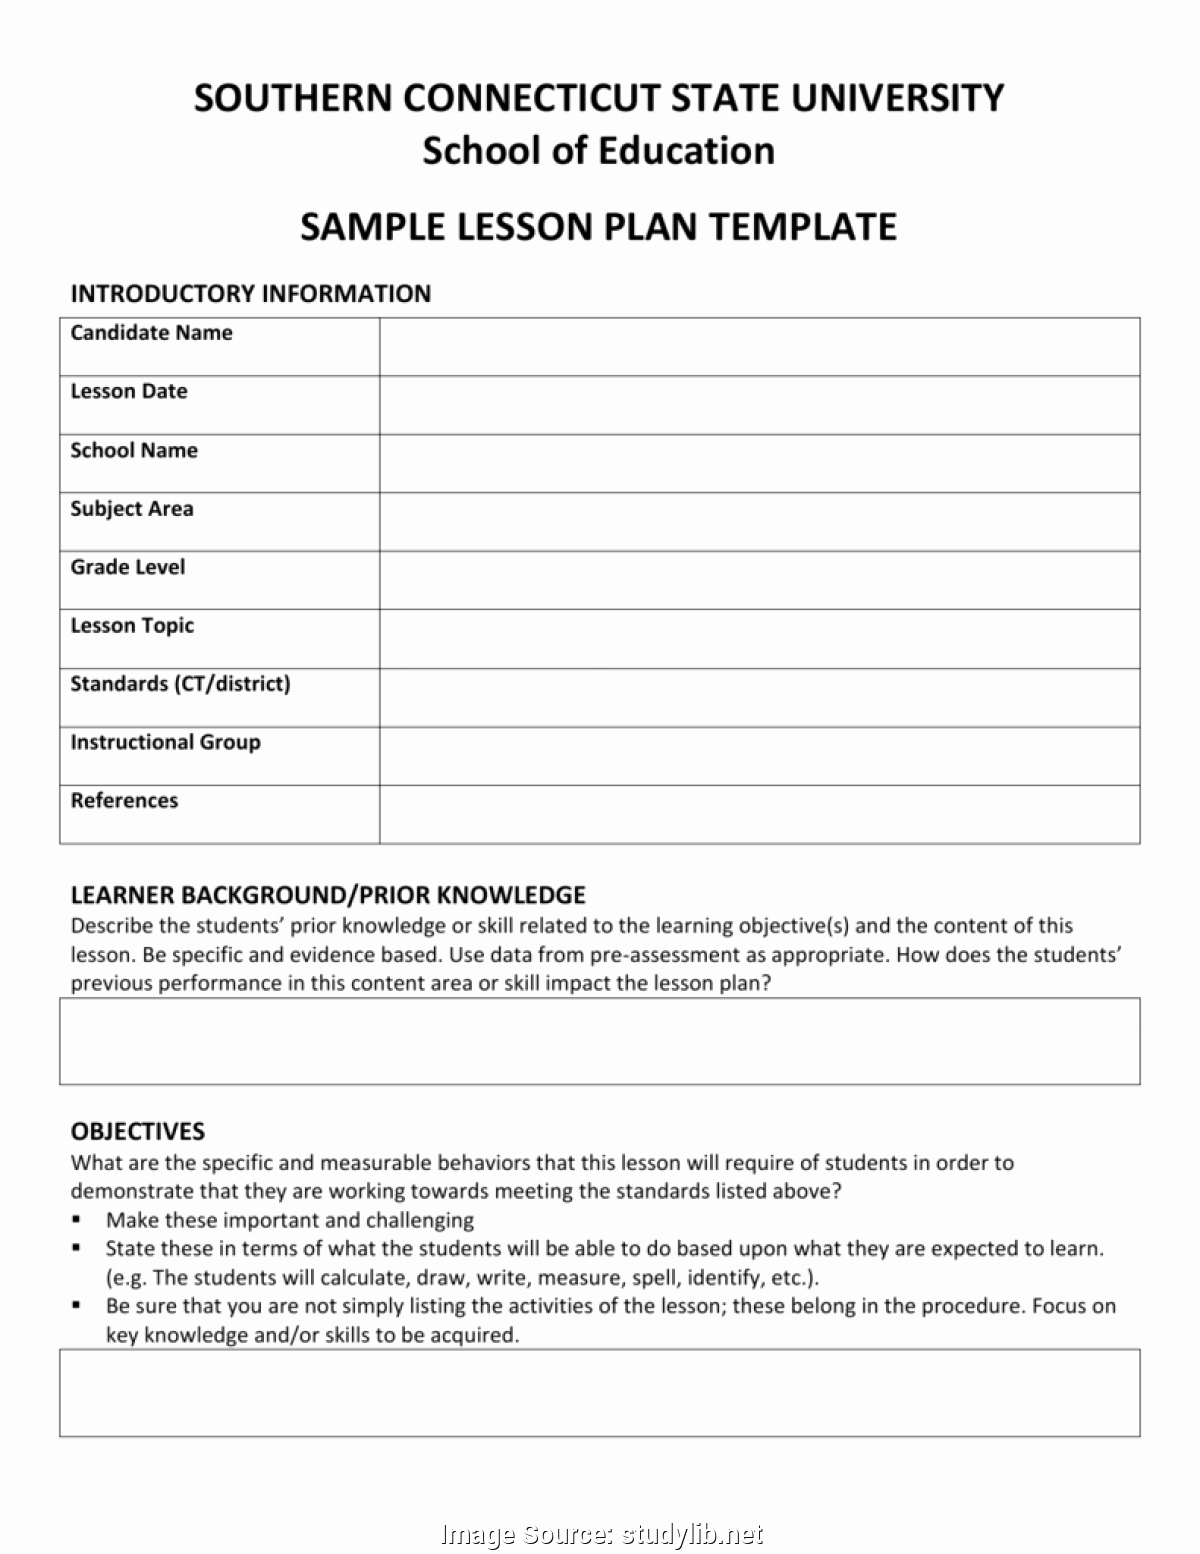 Edtpa Lesson Plan Template Ny Inspirational Best Pumpkin themed Lesson Plans for Preschool A Day In